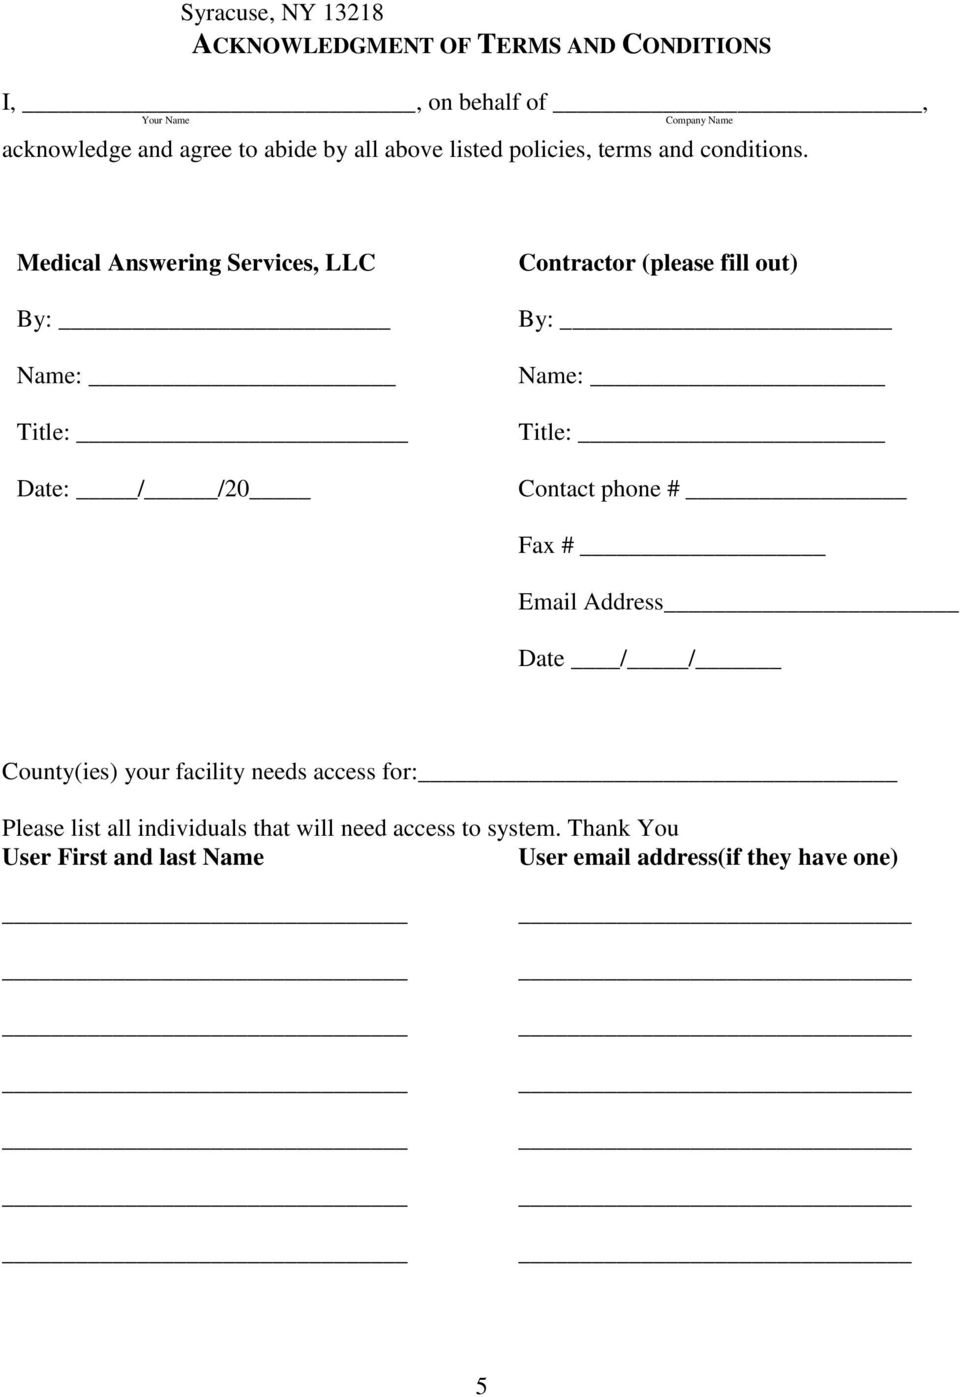 Medical Answering Services, LLC By: Name: Title: Date: / /20 Contractor (please fill out) By: Name: Title: Contact phone # Fax